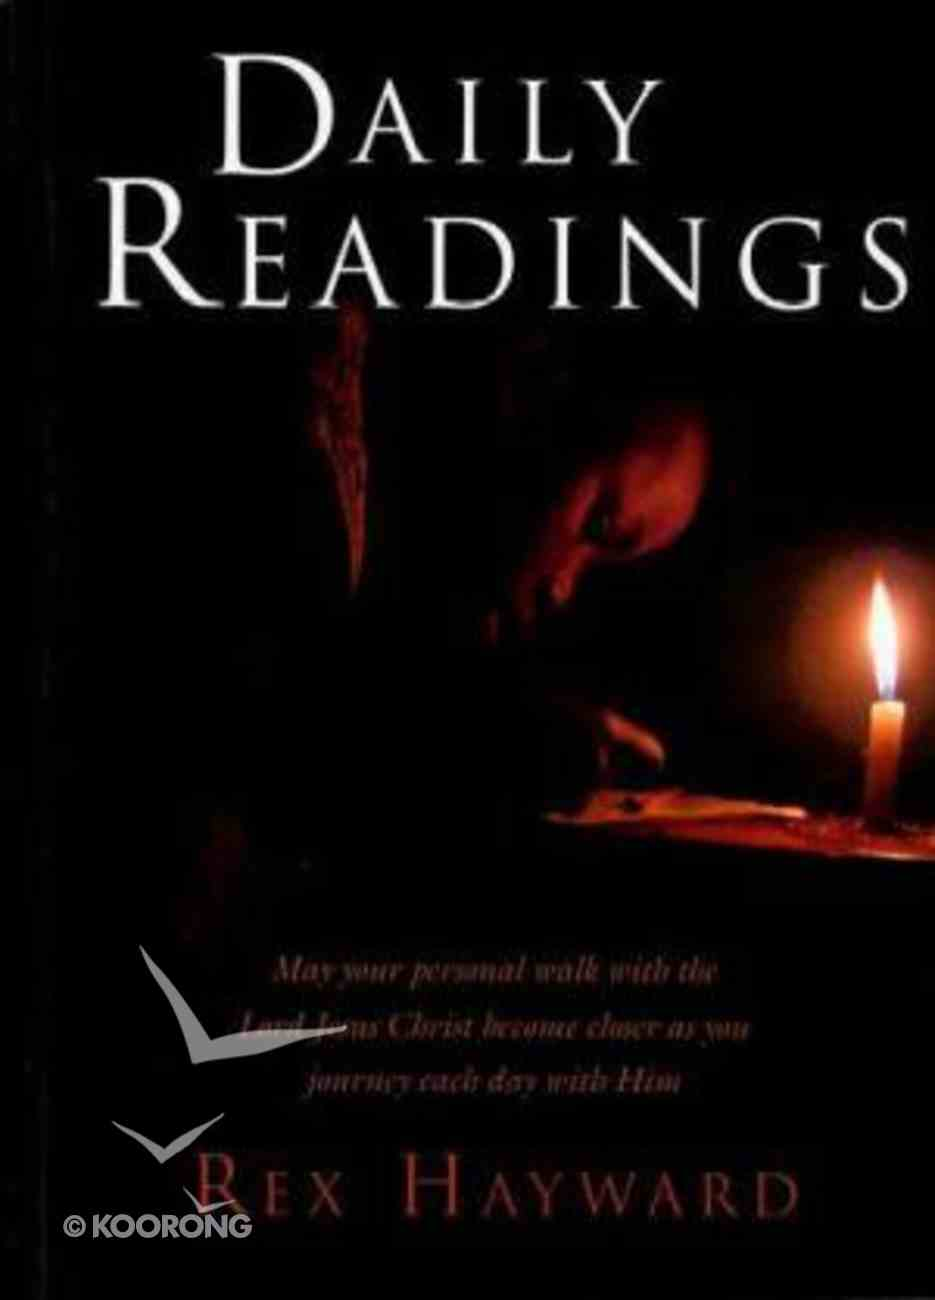 Daily Readings Paperback